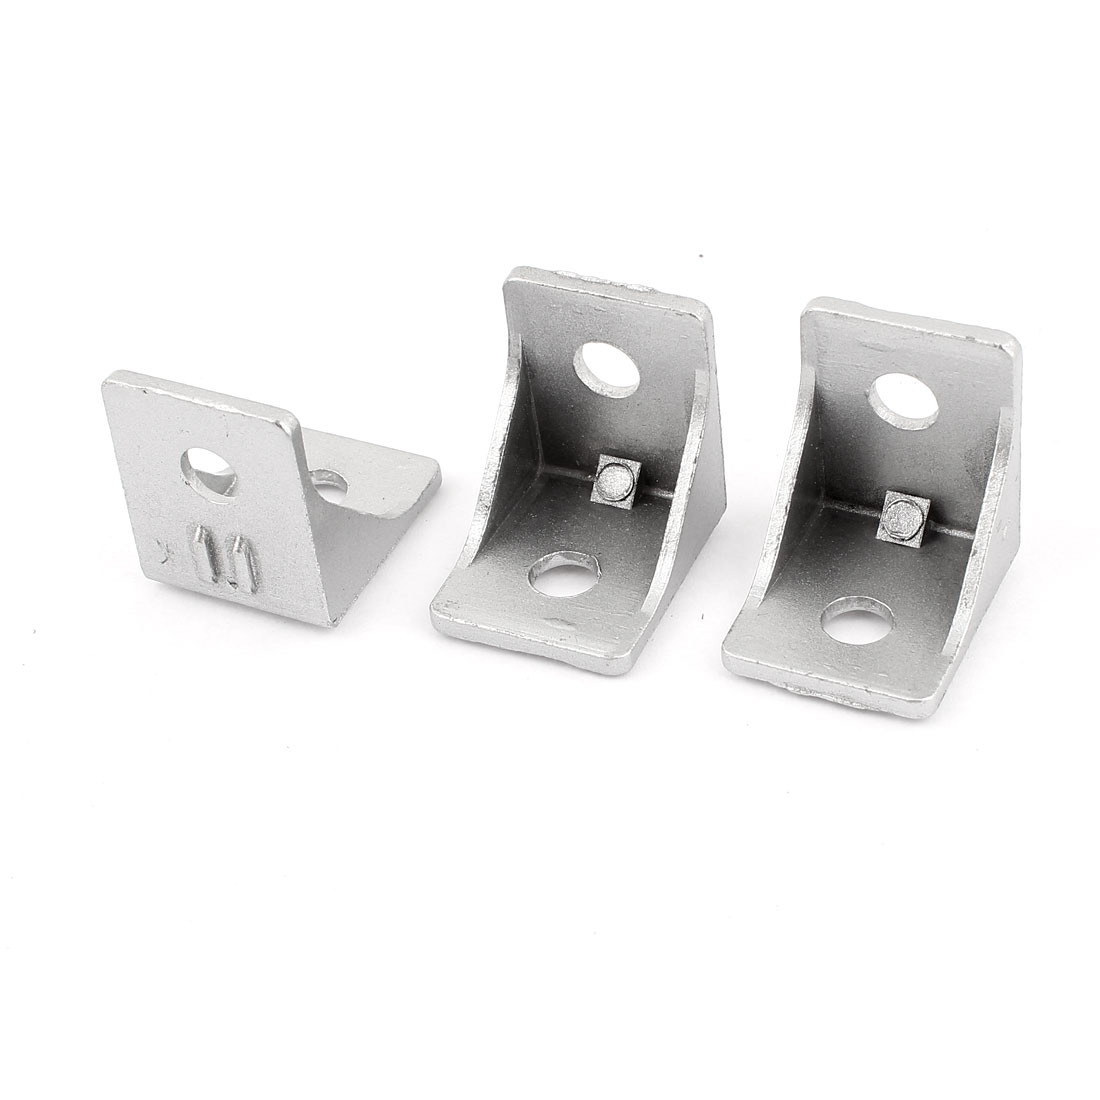 3 Pcs Silver Tone Metal 90 Degree Door Angle Bracket 30mm x 30mm